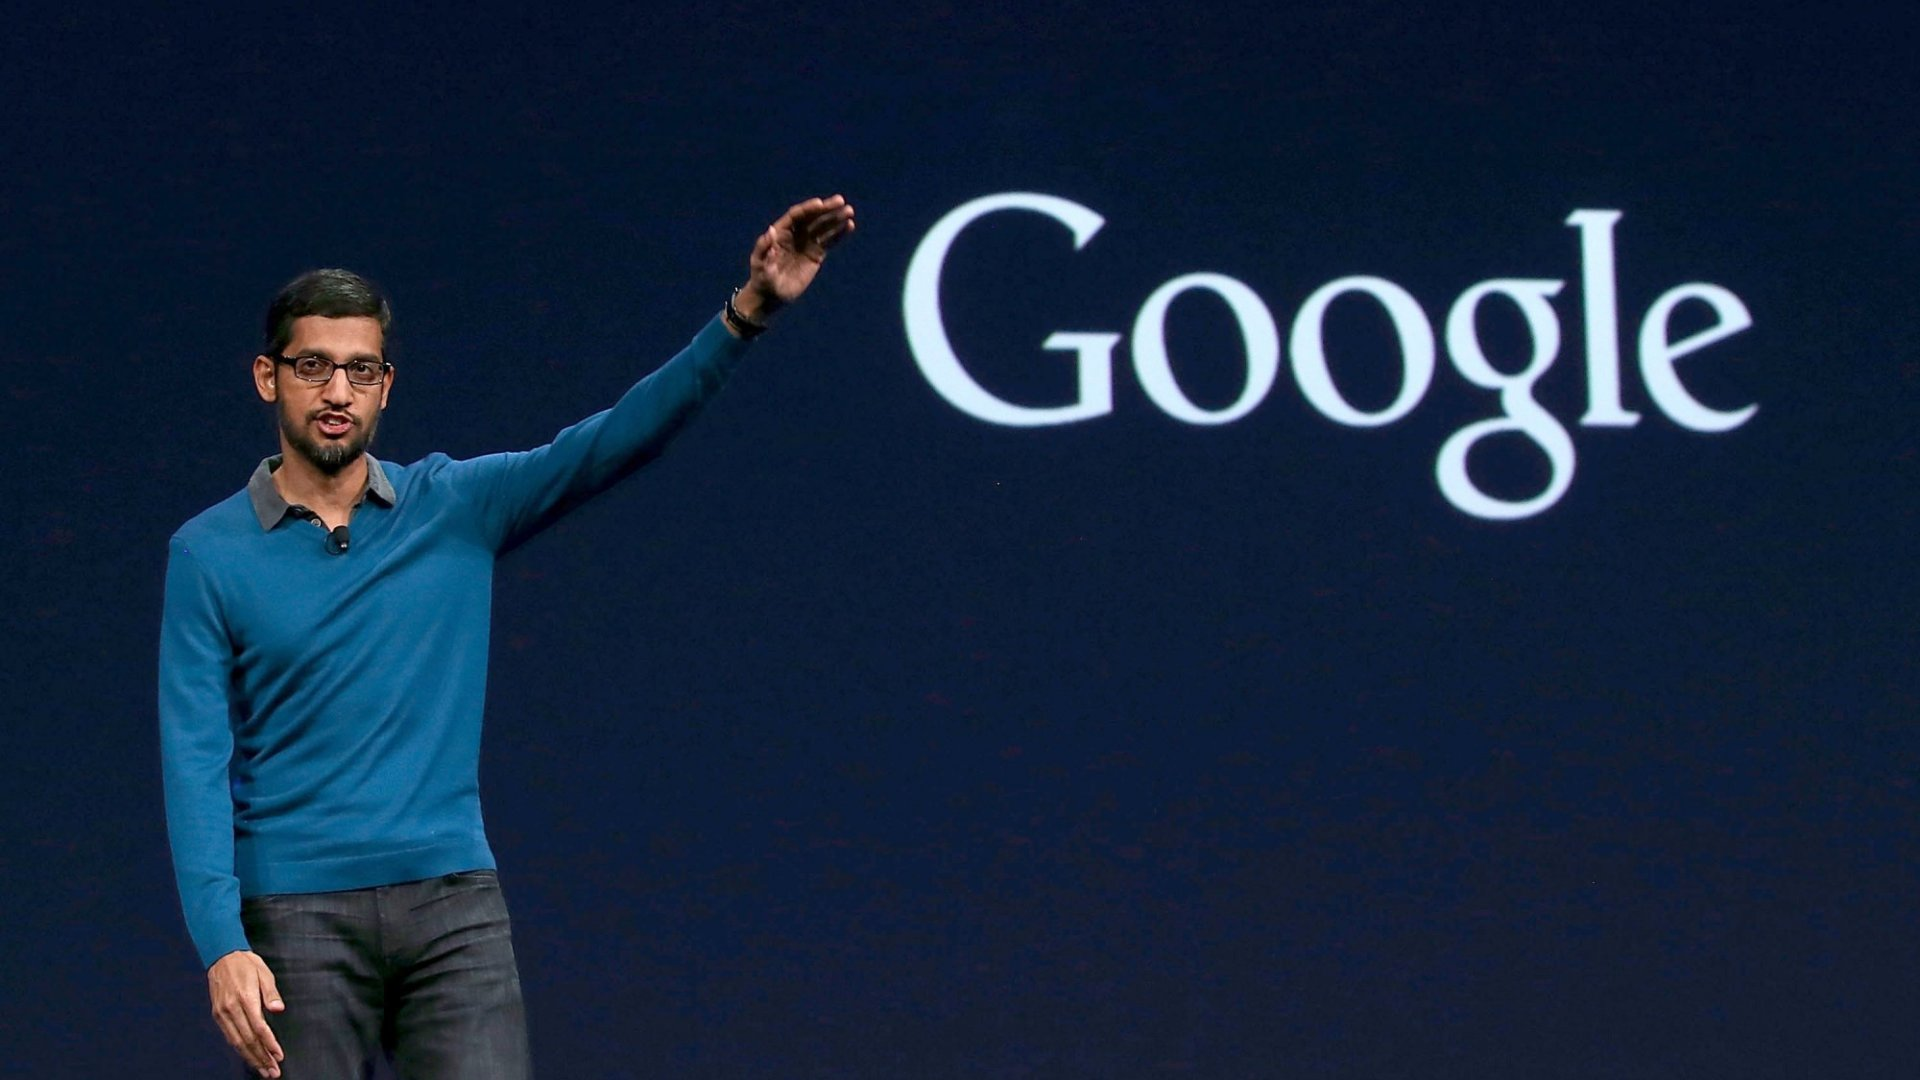 Google Announced Some Awesome Upgrades to Its Platforms